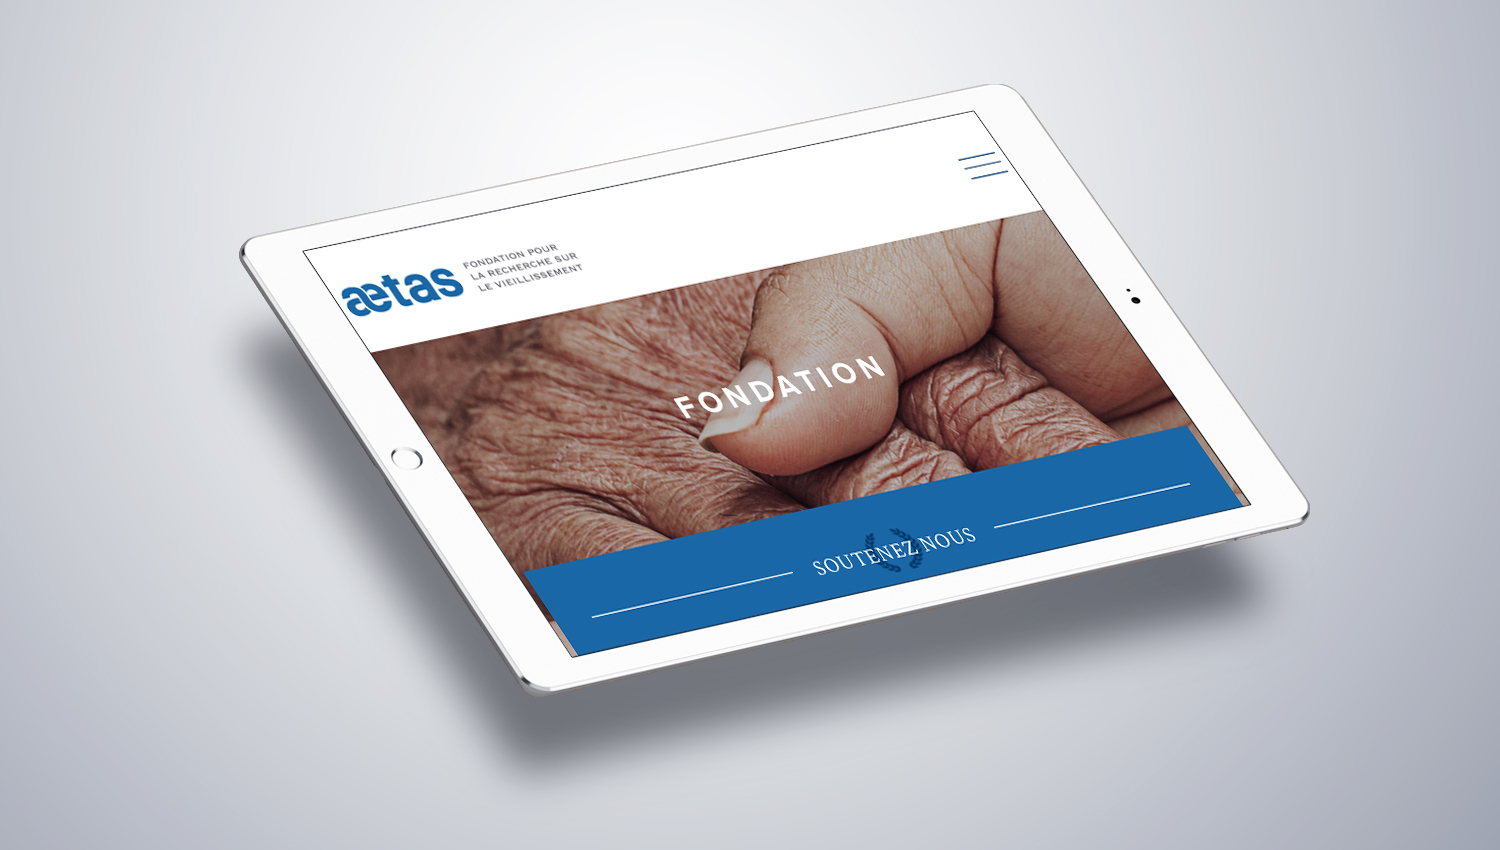 Web design tablet view for Aetas by 8 Ways